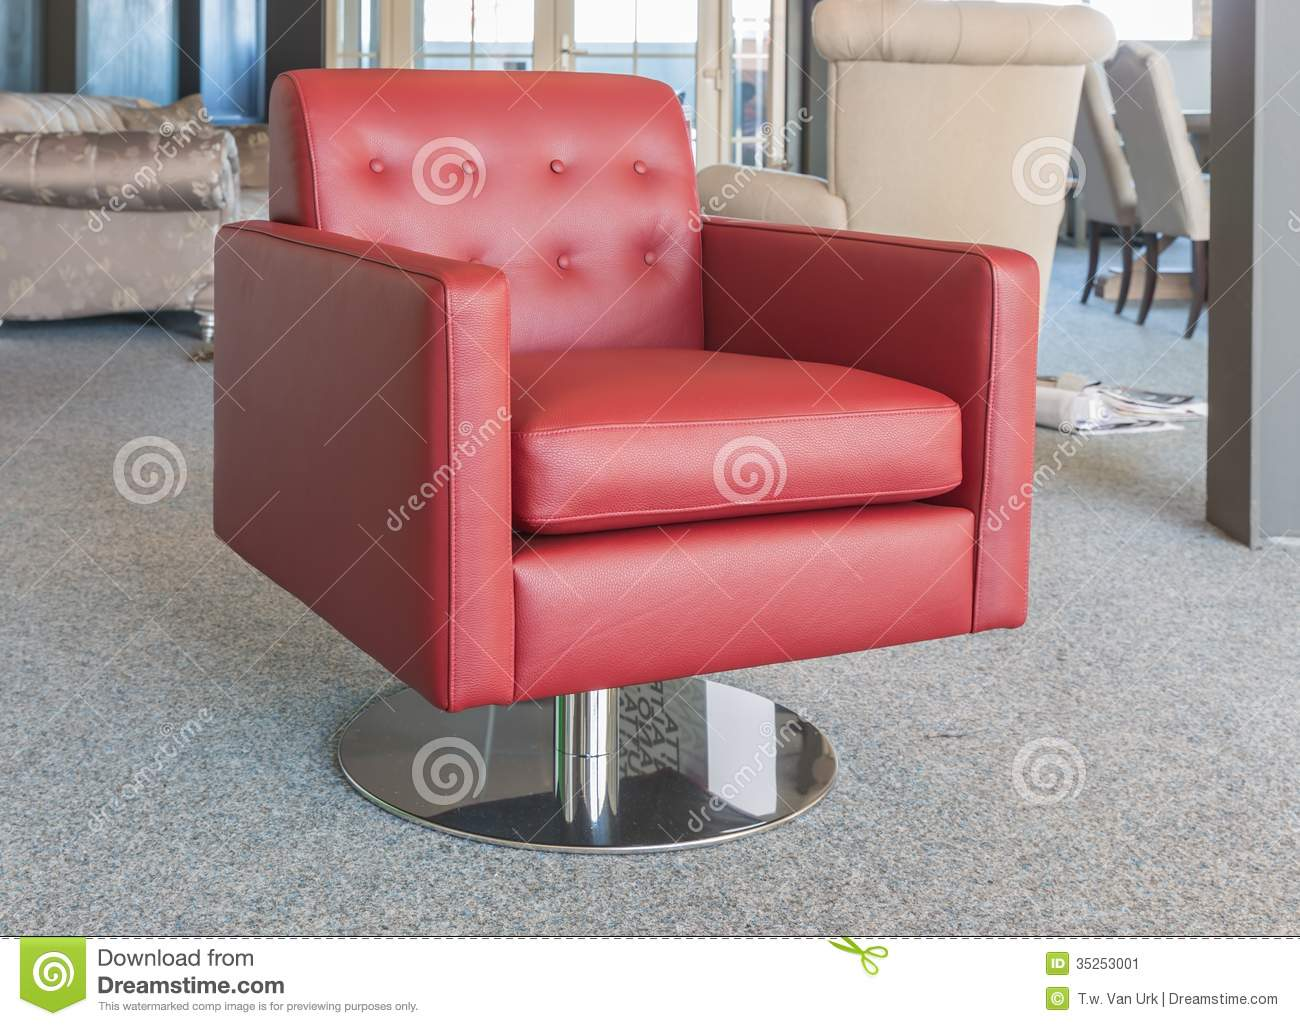 Showroom Modern Furniture Shop With Luxury Red Leather Armchair Stock Image